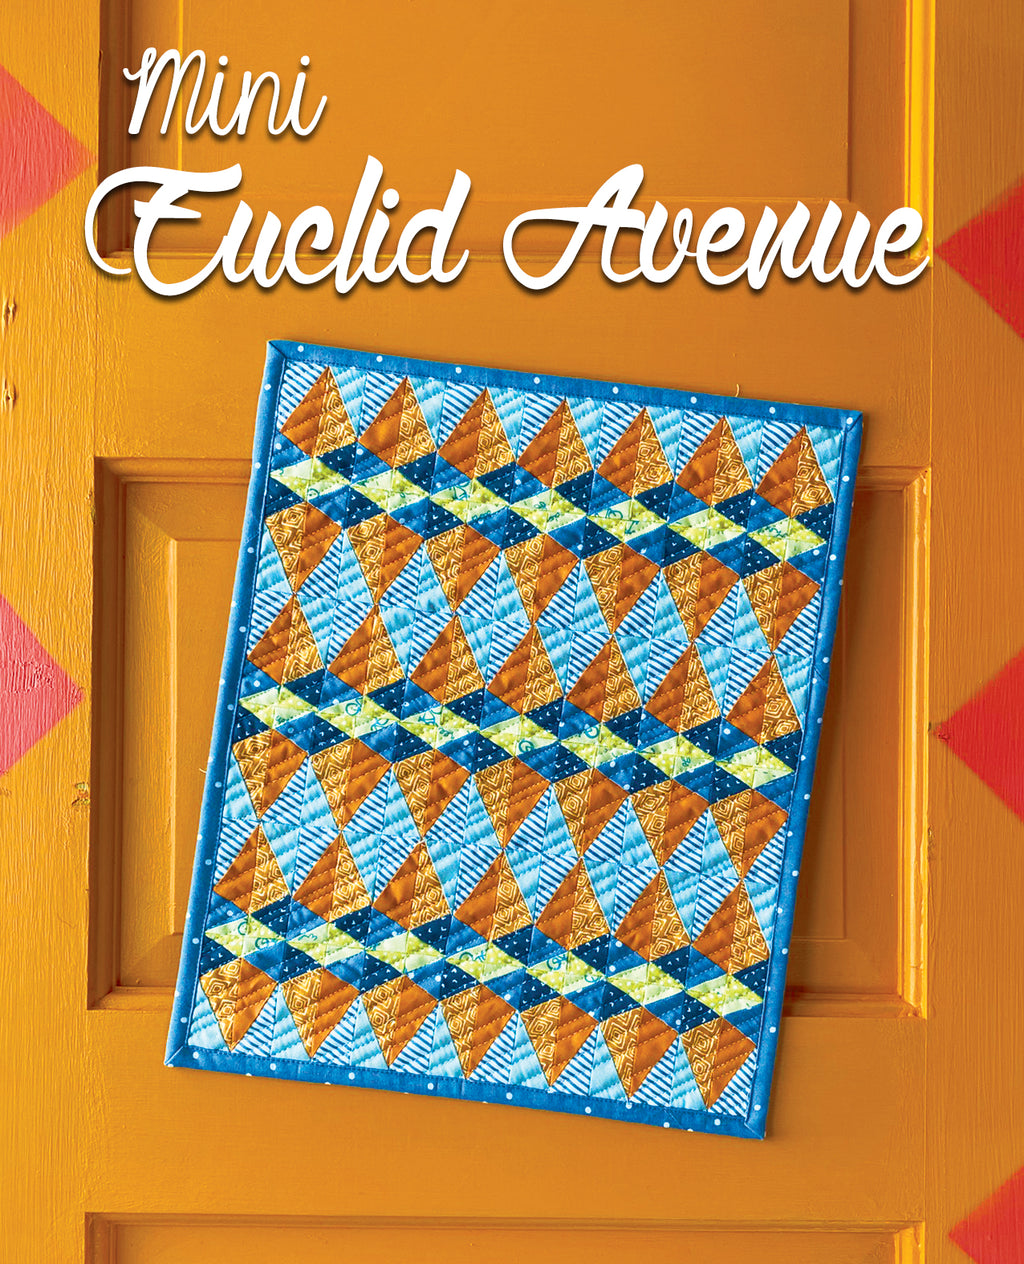 Mini Euclid Avenue Quilt Pattern